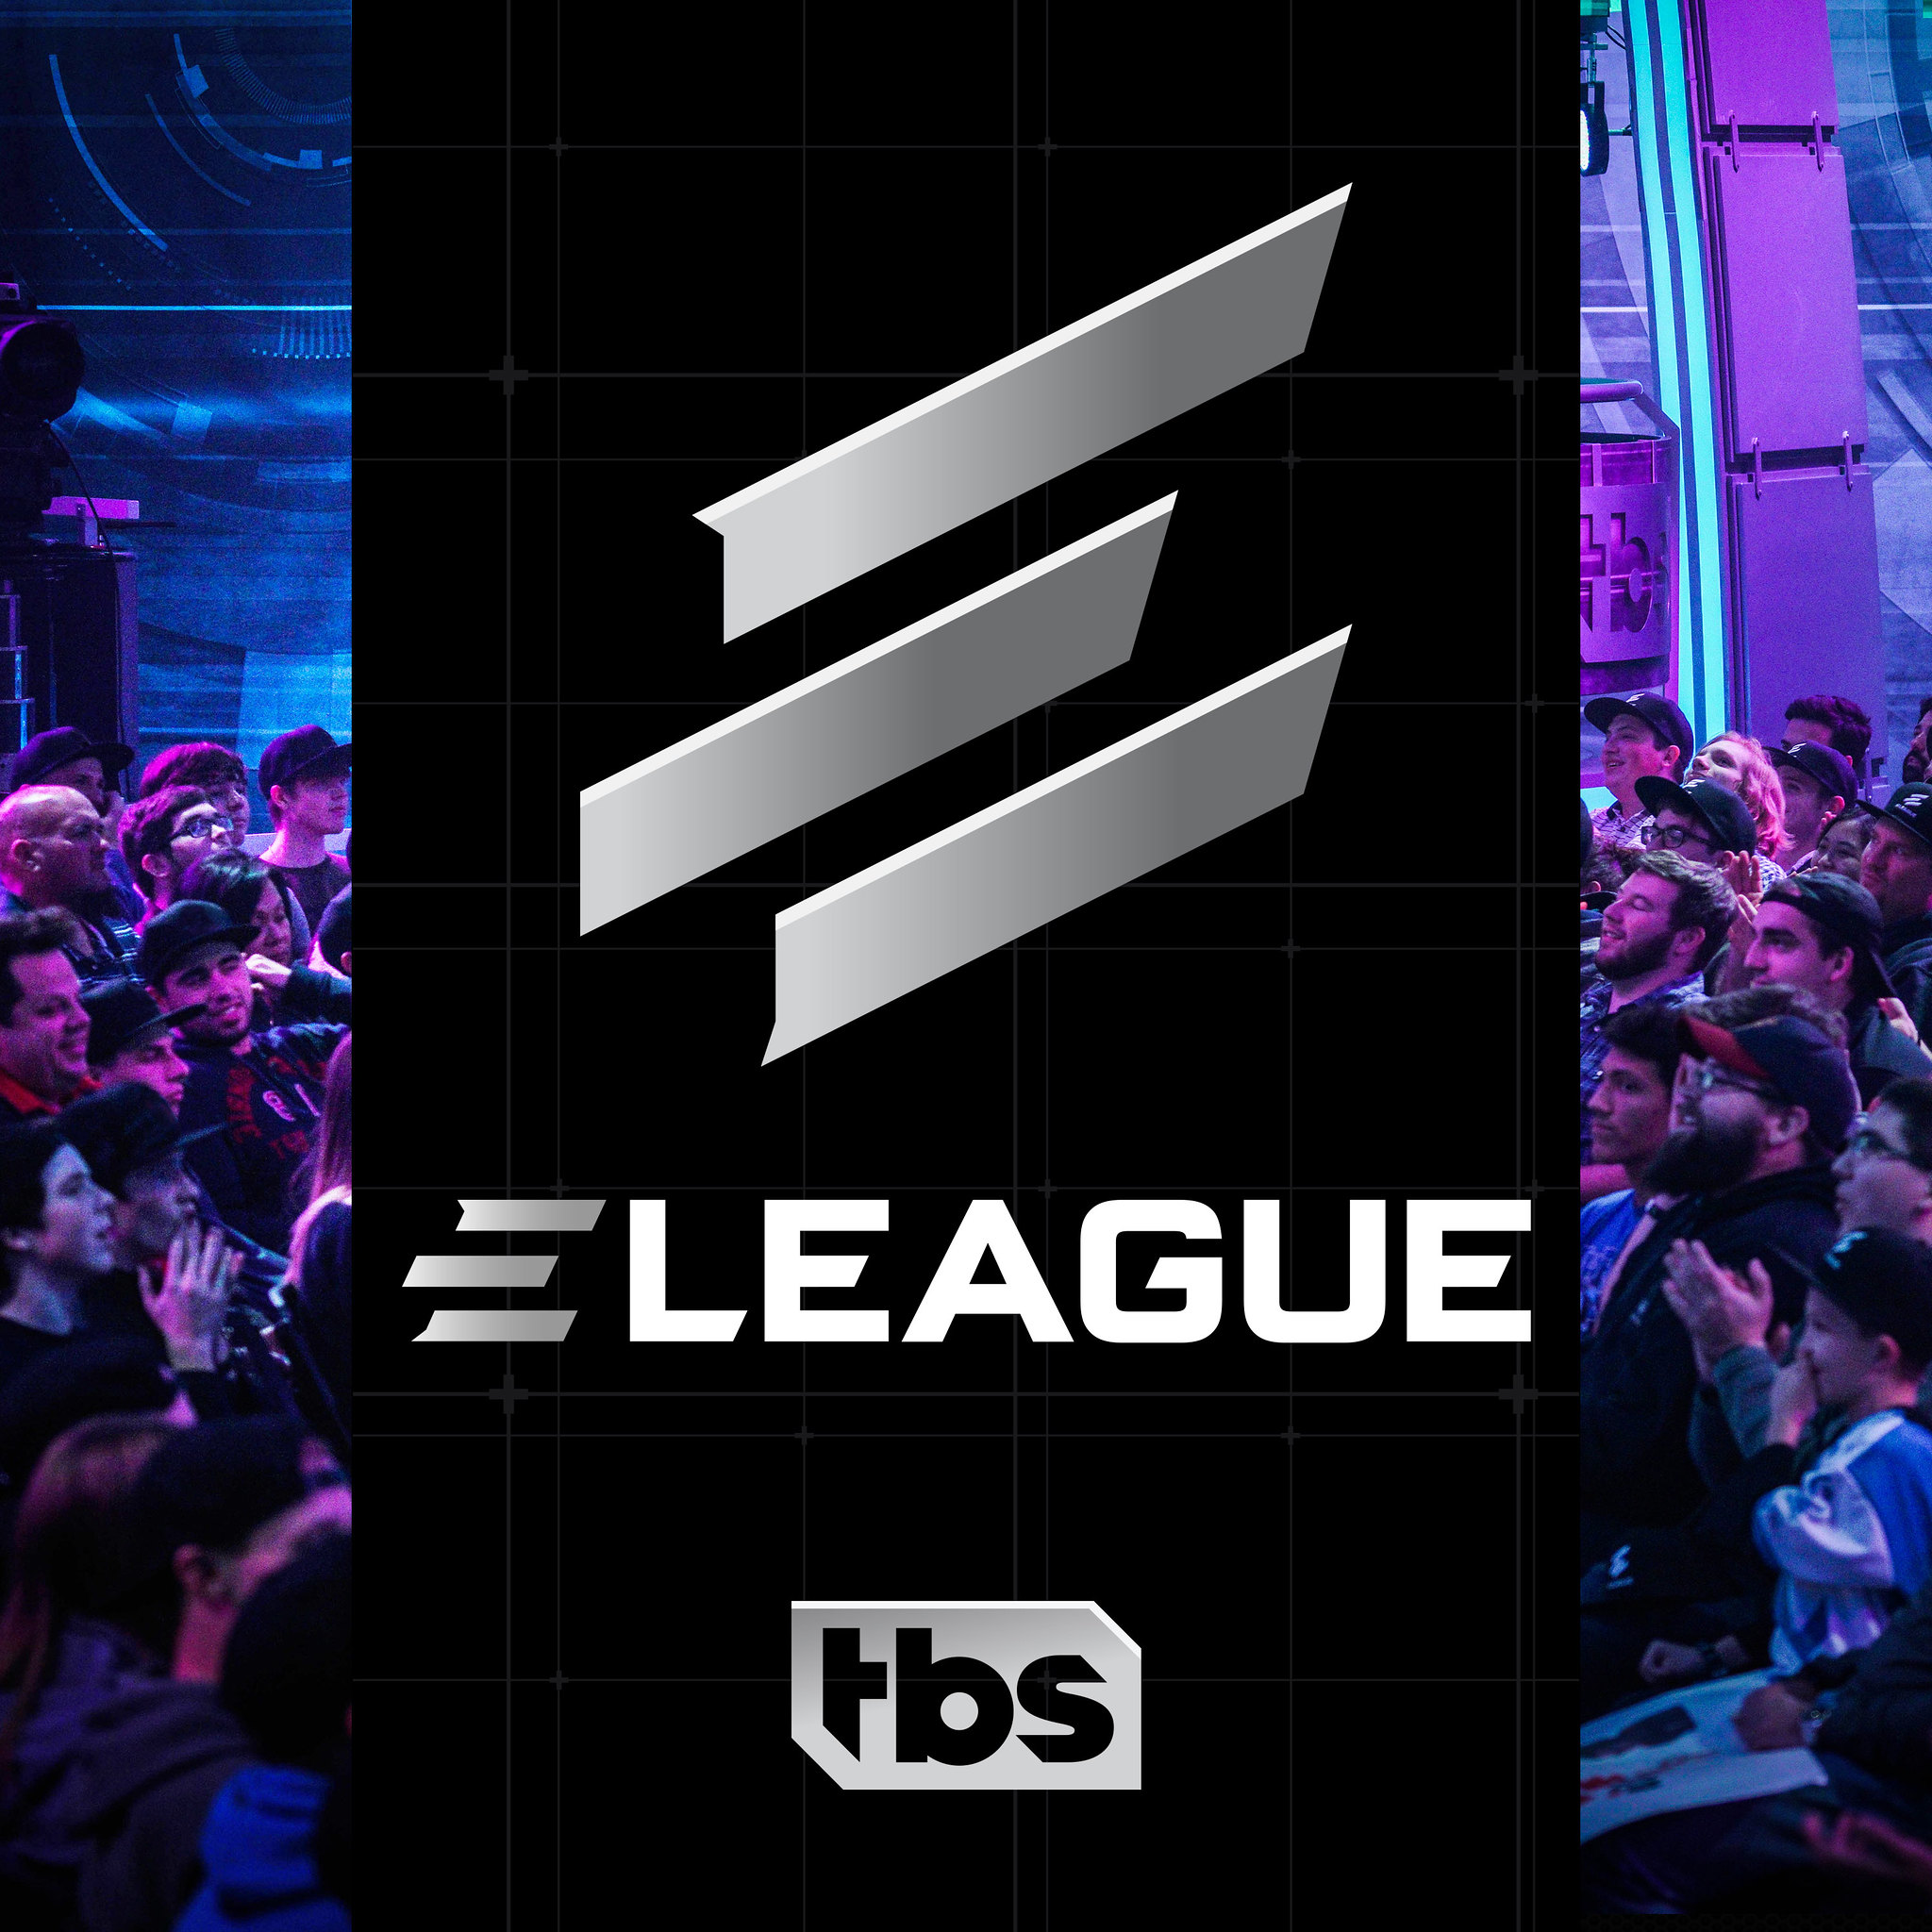 ELEAGUE Finals